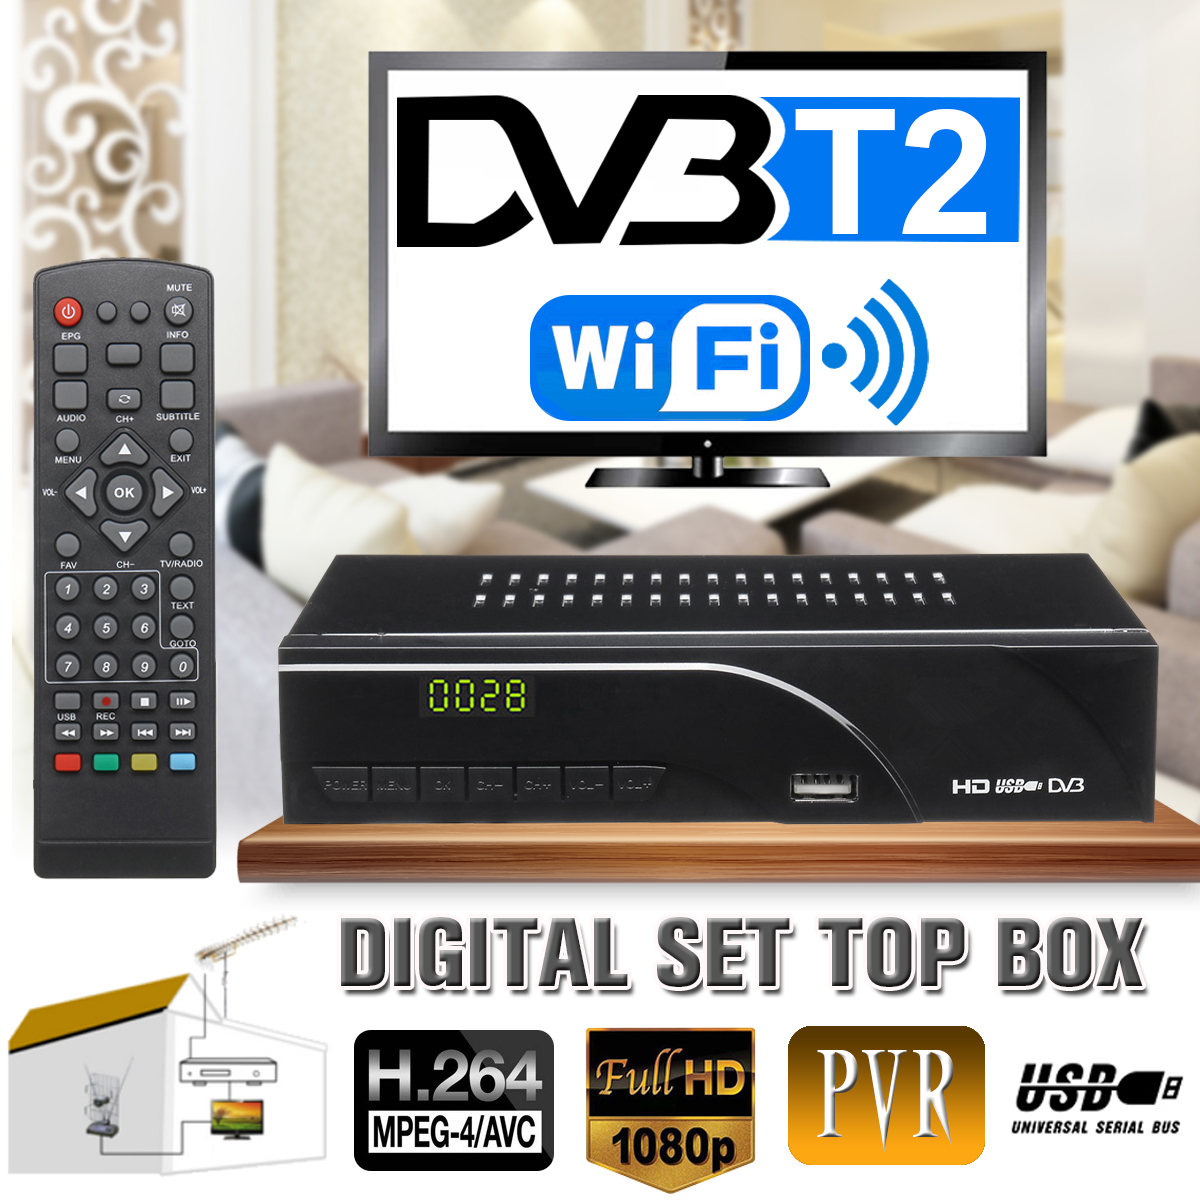 TV Satellite Receiver DVB T2 Full HD 1080P Digital TV Tuner Smart Set Top Box MPEG 4 Only for H.264 for UK Malaysia Singapore